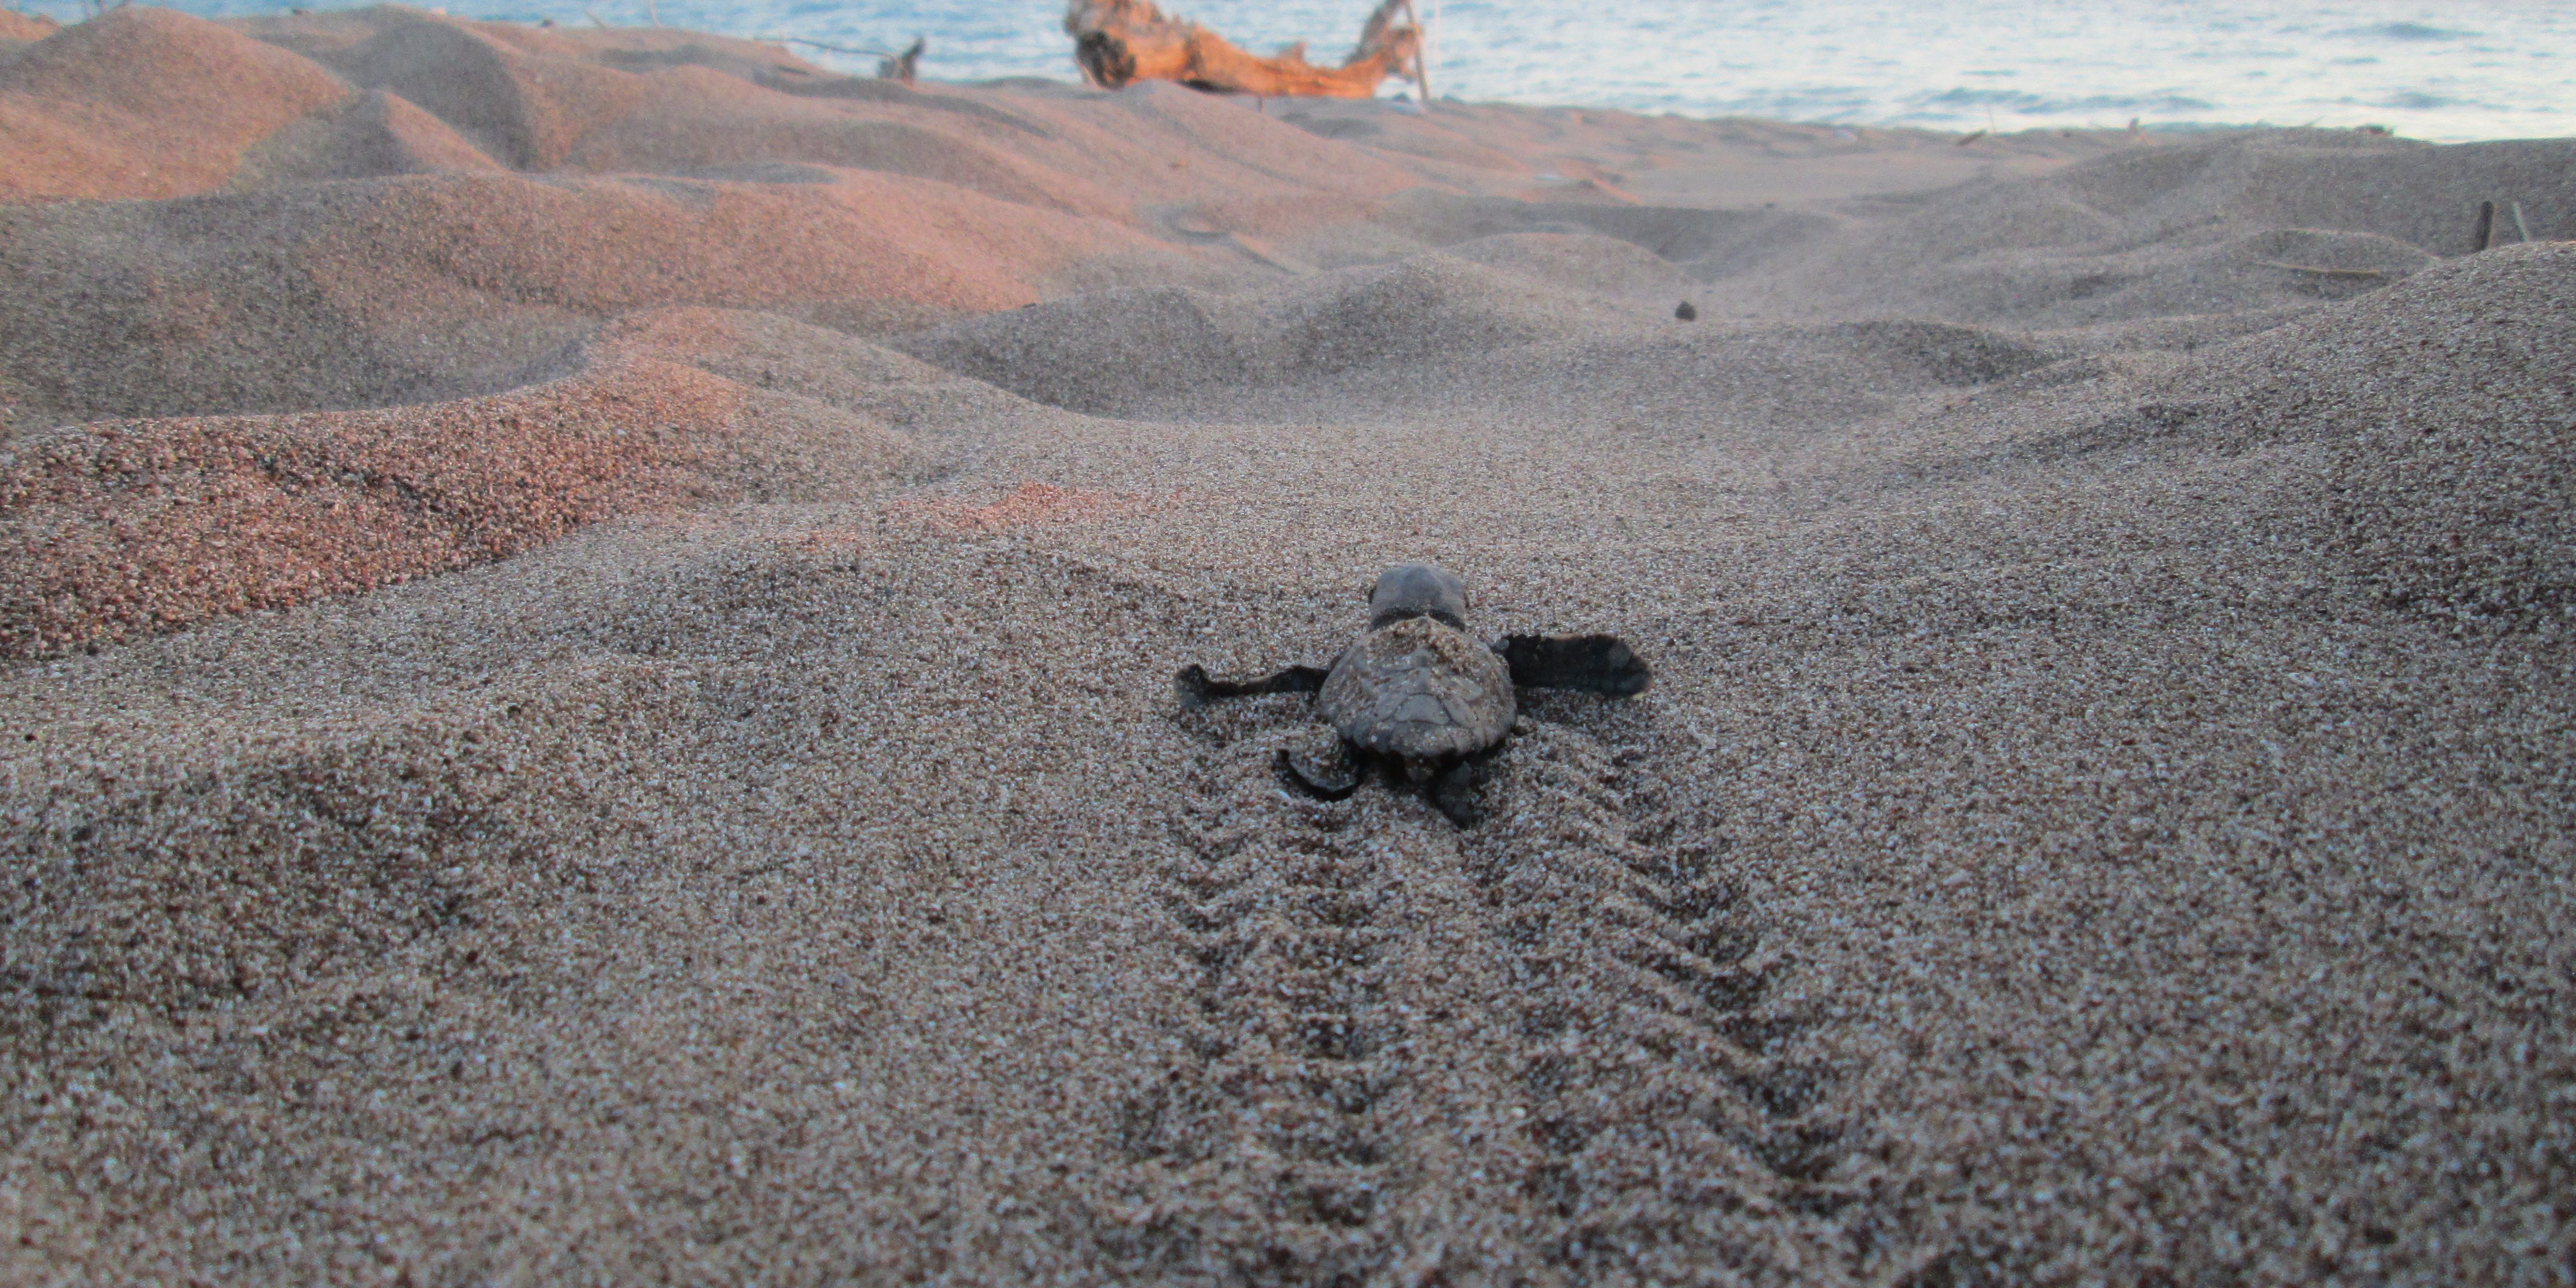 Turtle hatchlings make their way to the ocean.